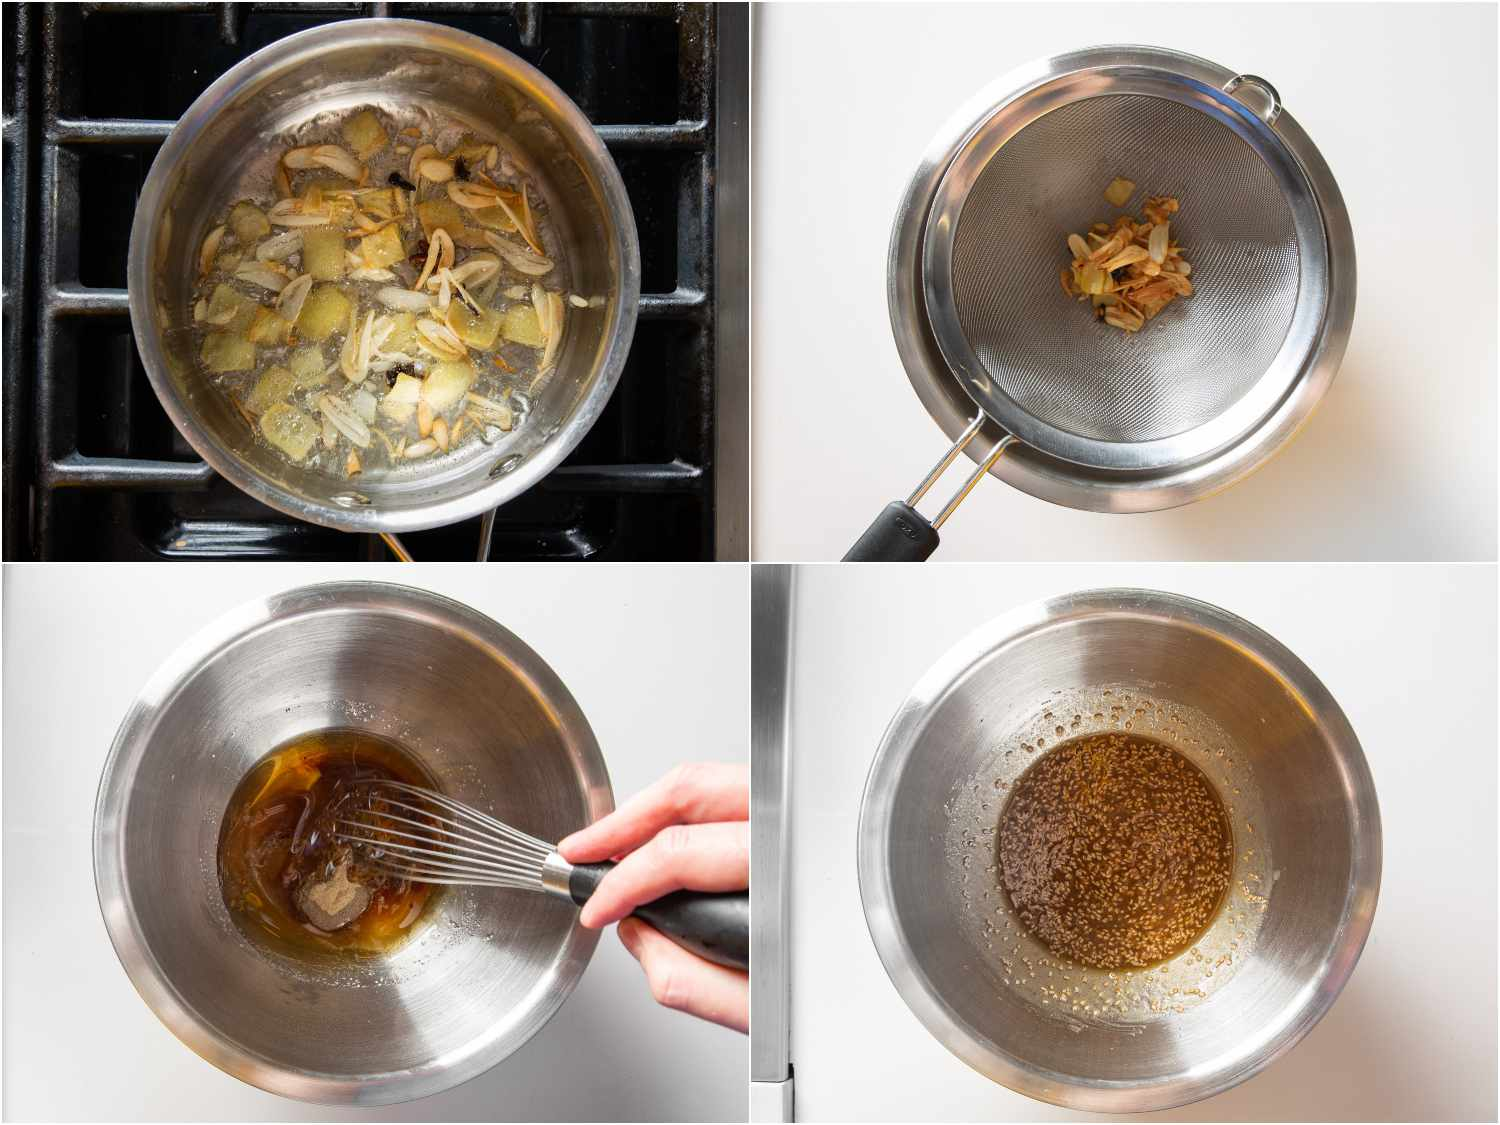 Heating oil, garlic, ginger, star anise, and cloves in a sauce pan and then straining before whisking in sesame oil, water, sugar, rice vinegar, salt, soy sauce, white pepper, and sesame seeds.